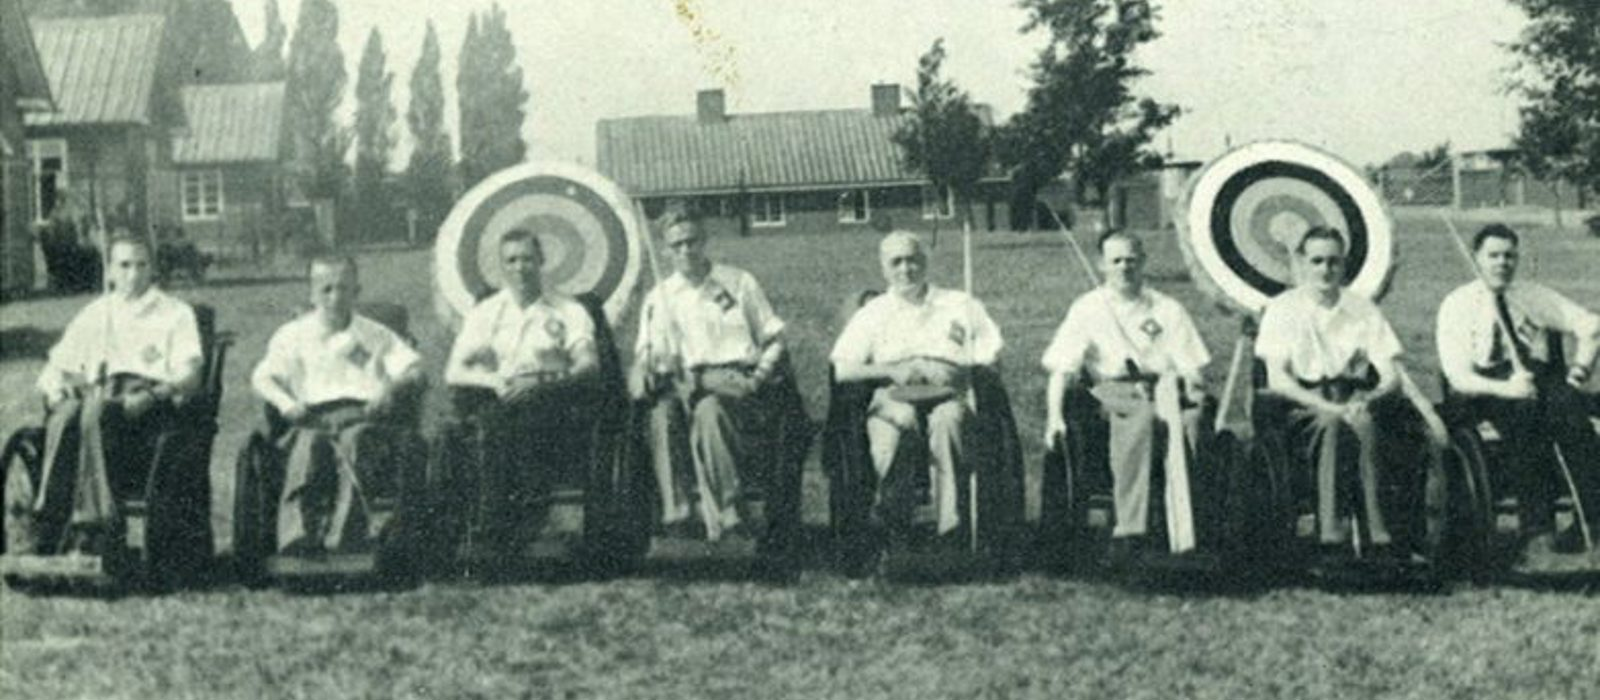 70th Anniversary of the Paralympic Movement